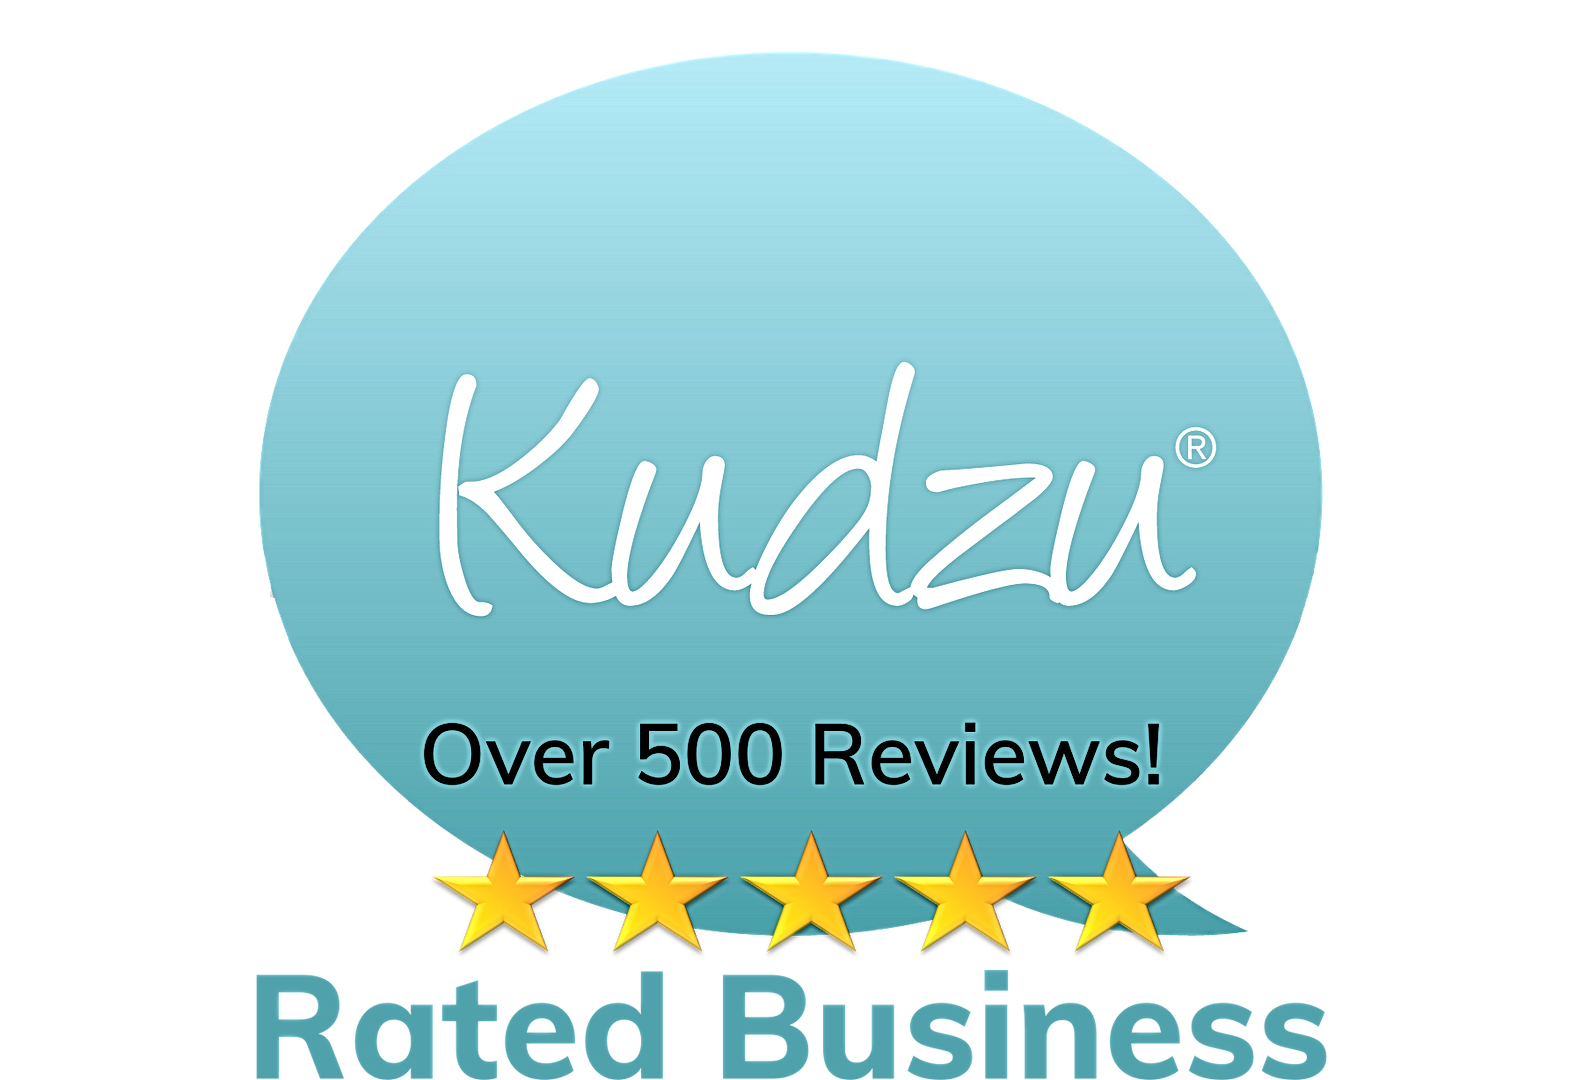 Kudzu 5 Star Rating.png